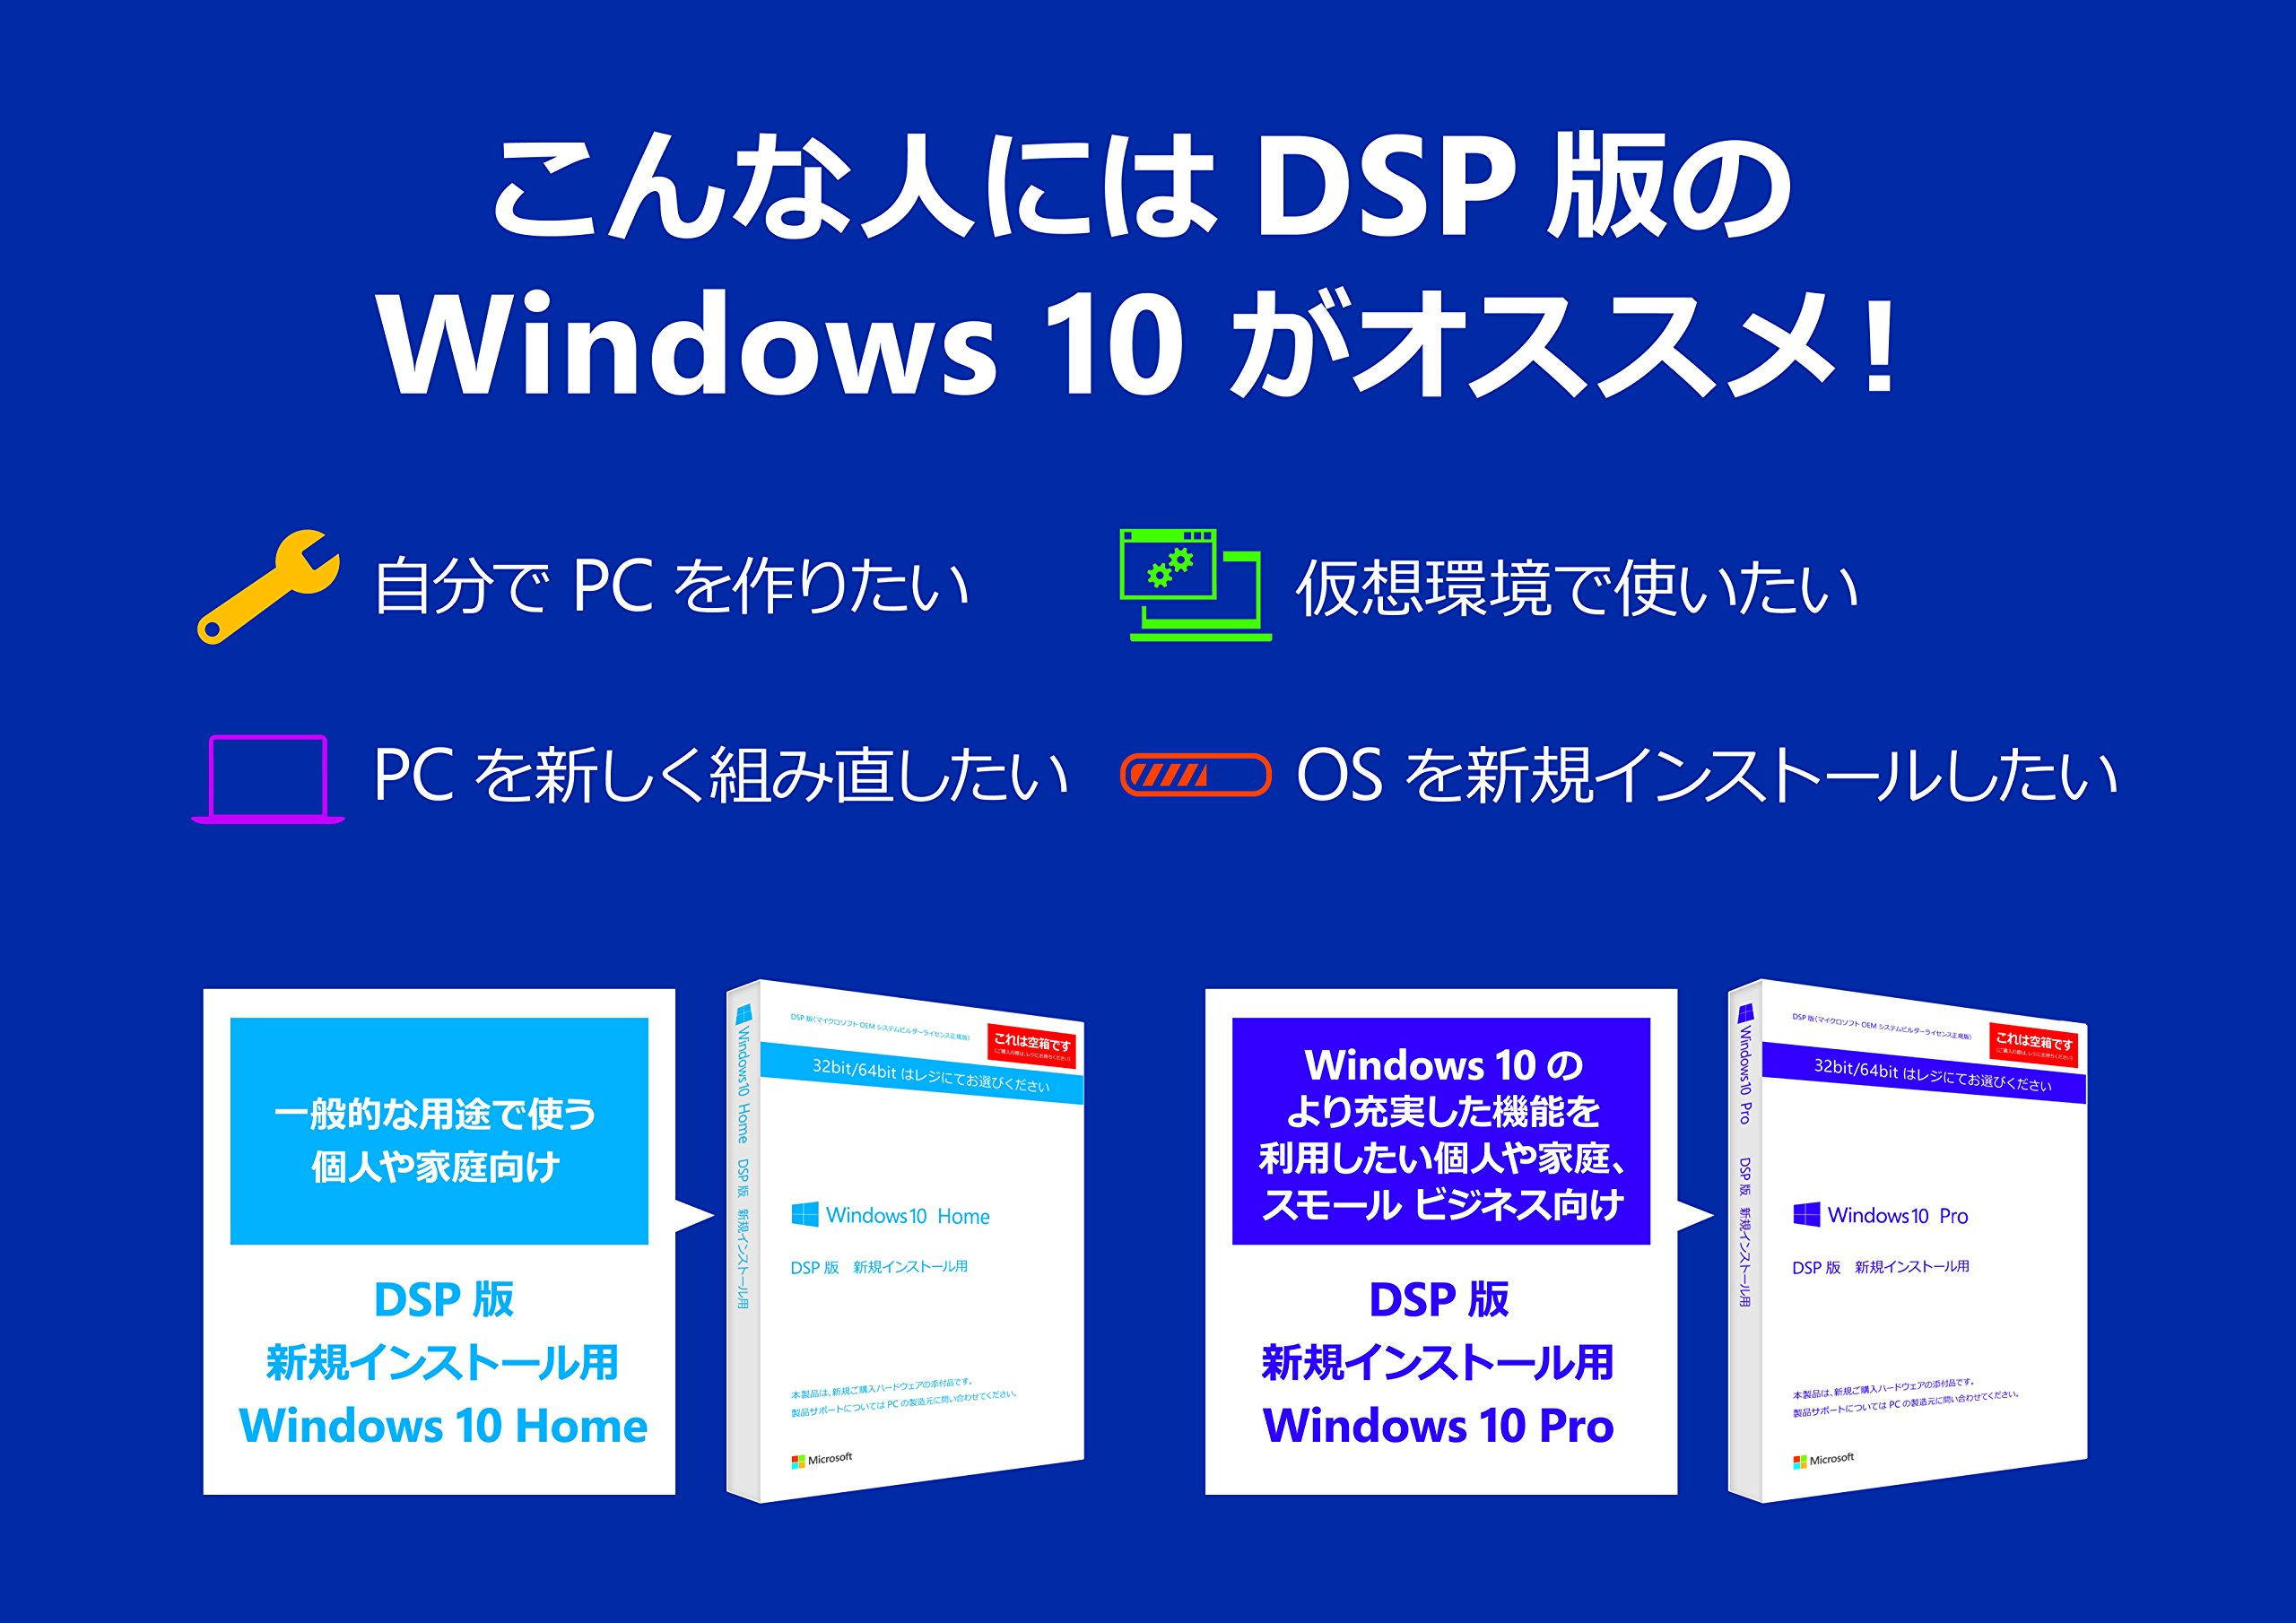 Windows 10 DSP版